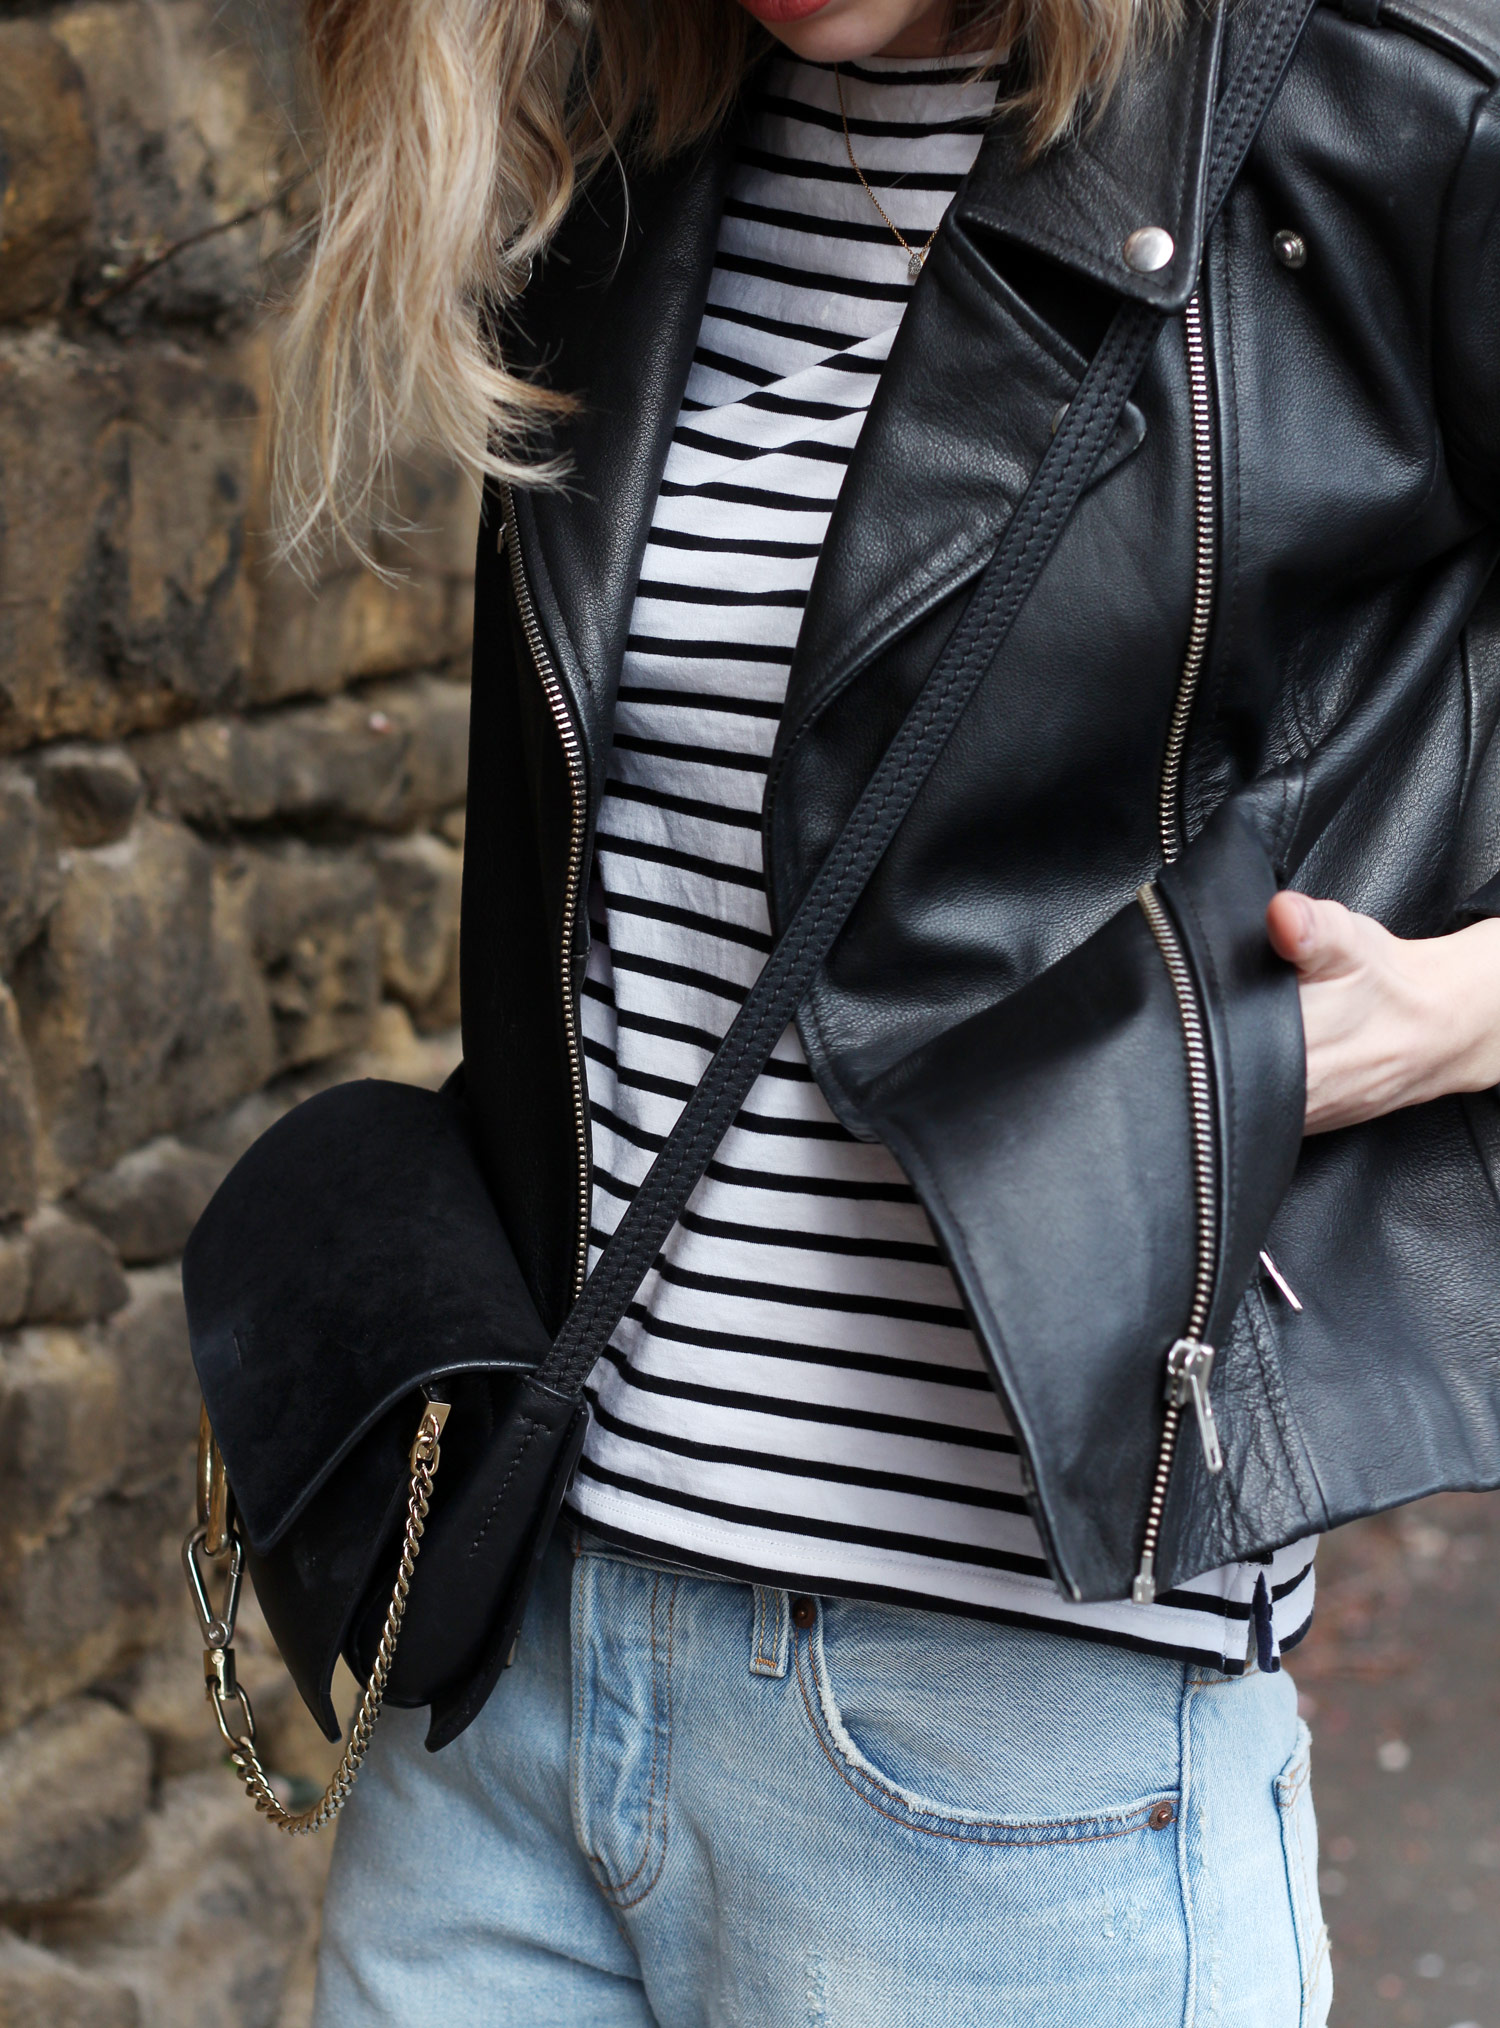 ted-baker-silver-loafers-leather-jacket-boyfriend-levi-stripe-top-6